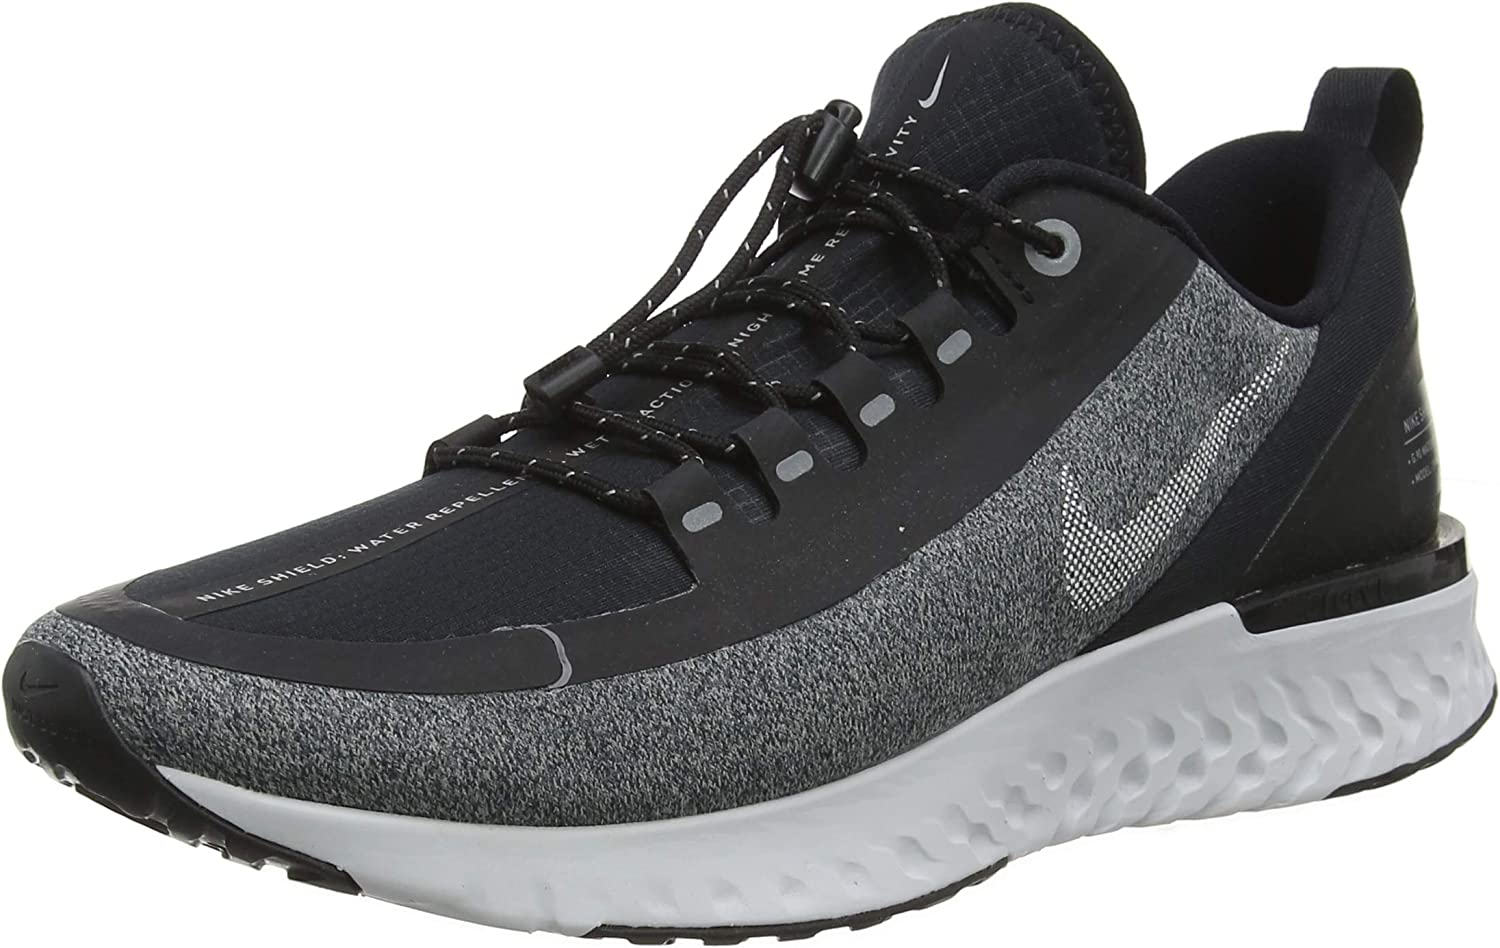 Nike Odyssey React Shield Mens Running Trainers